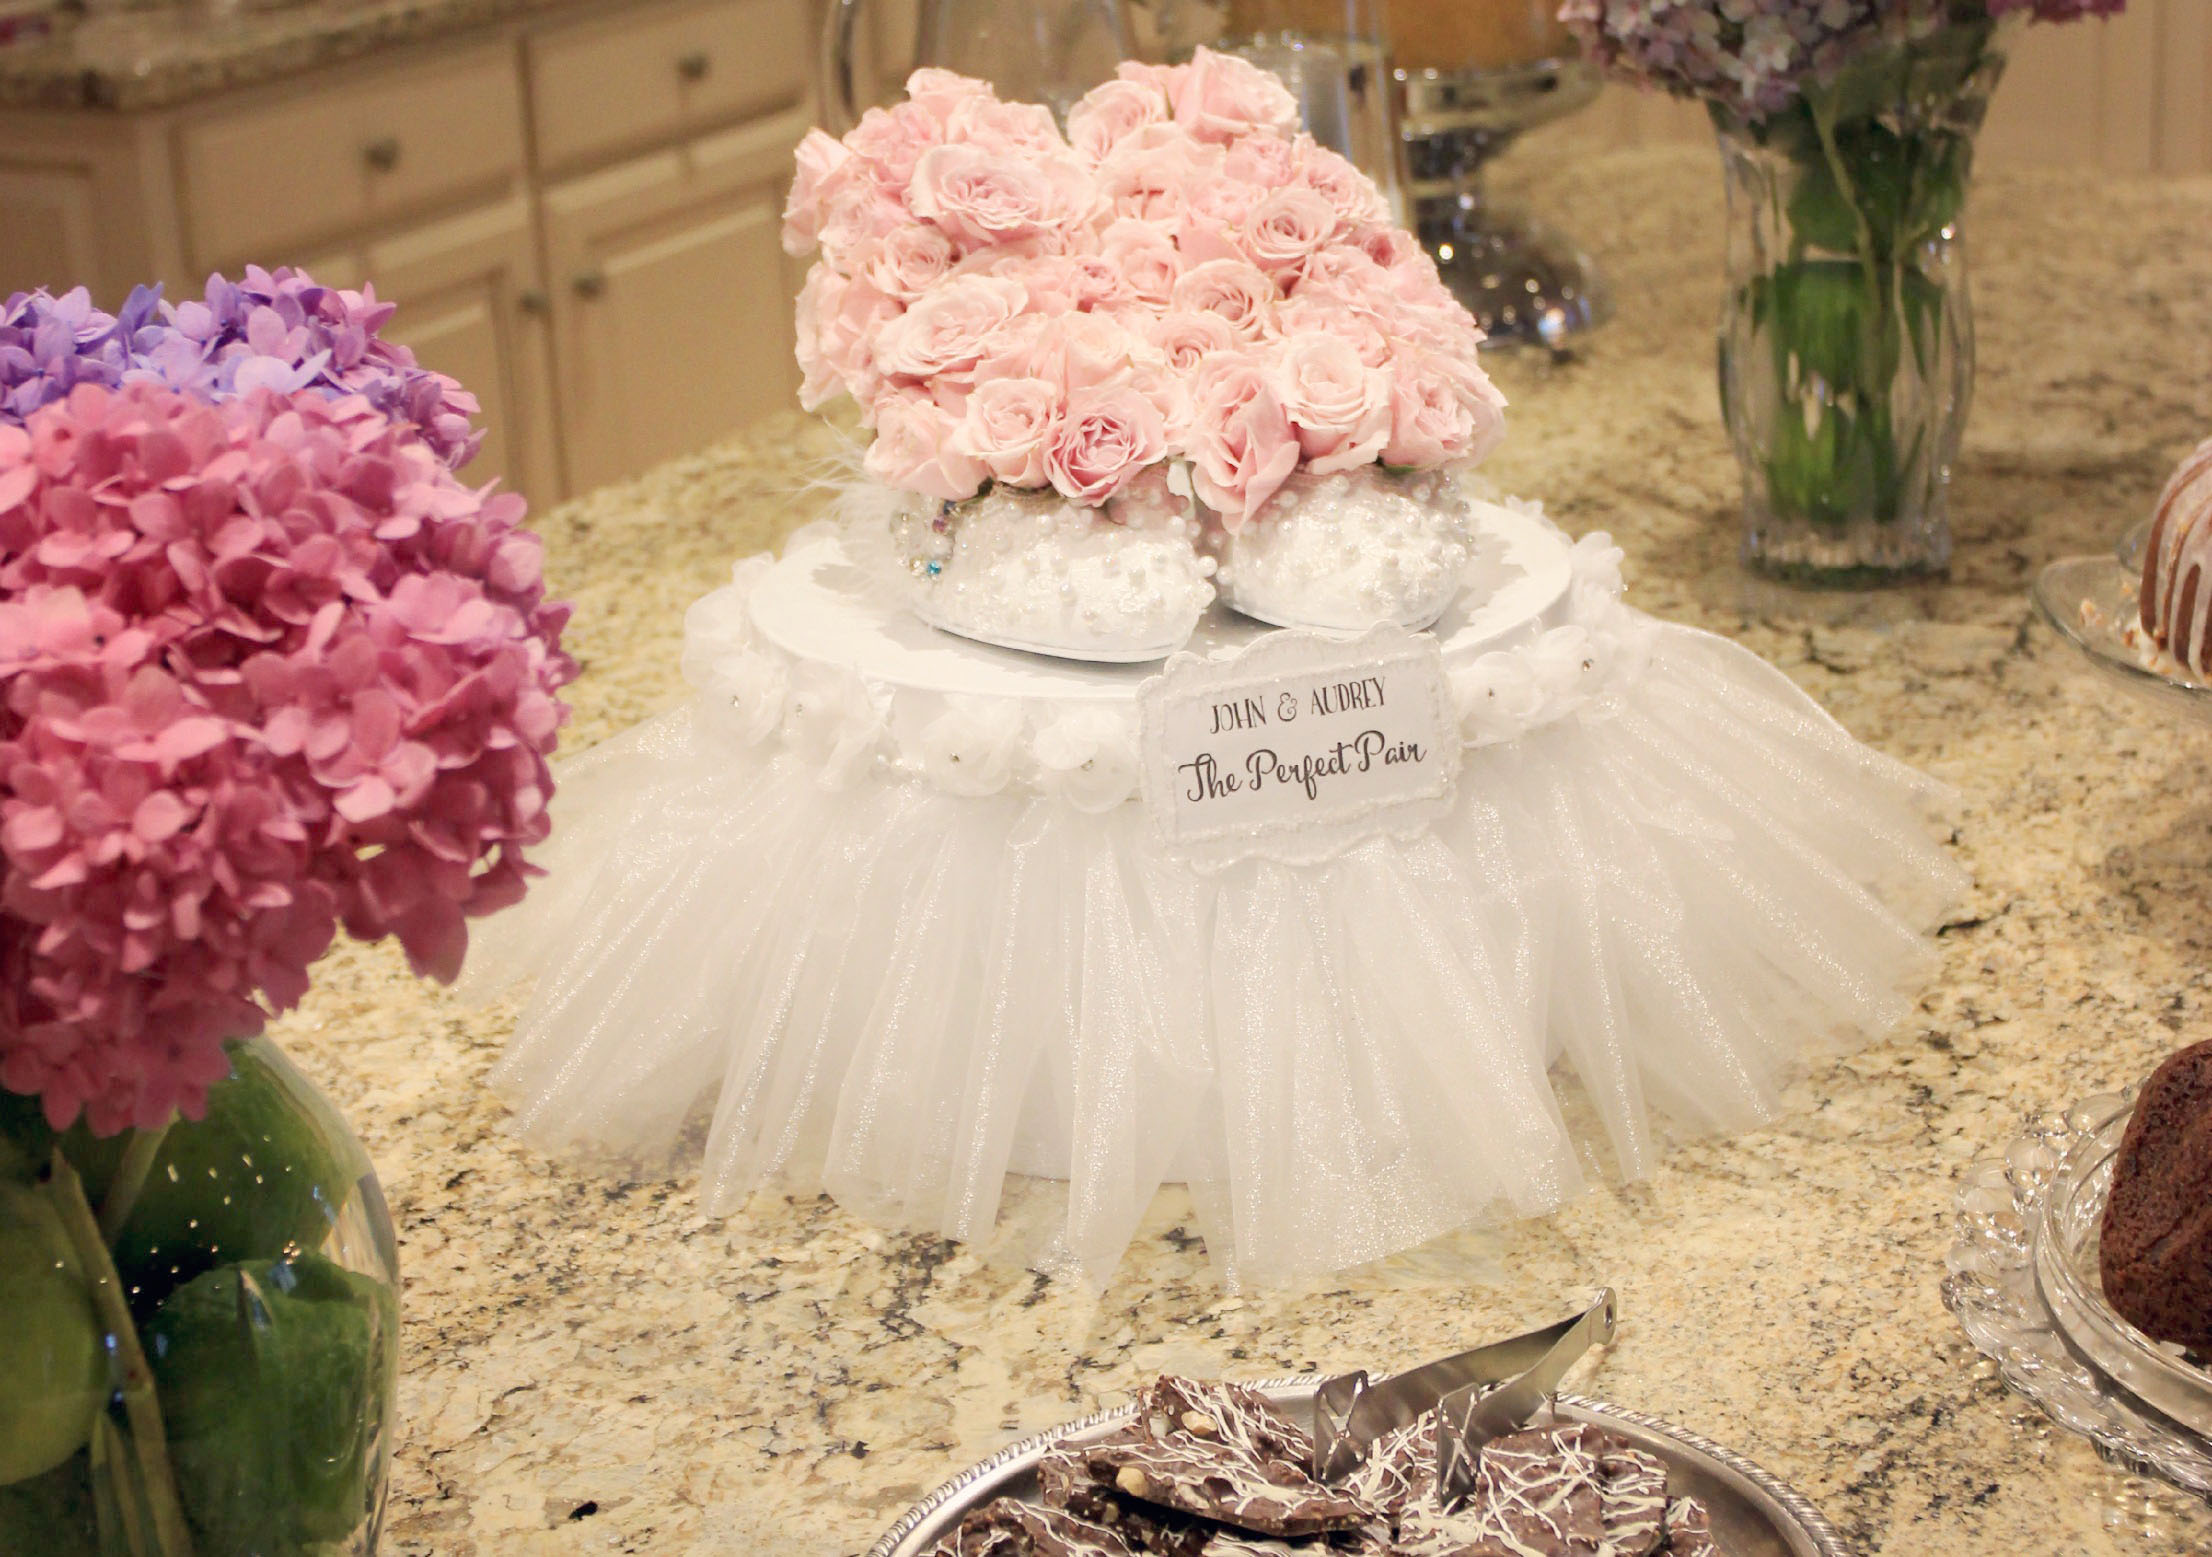 Bridal shower centerpiece ideas from Jenniferdecorates.com